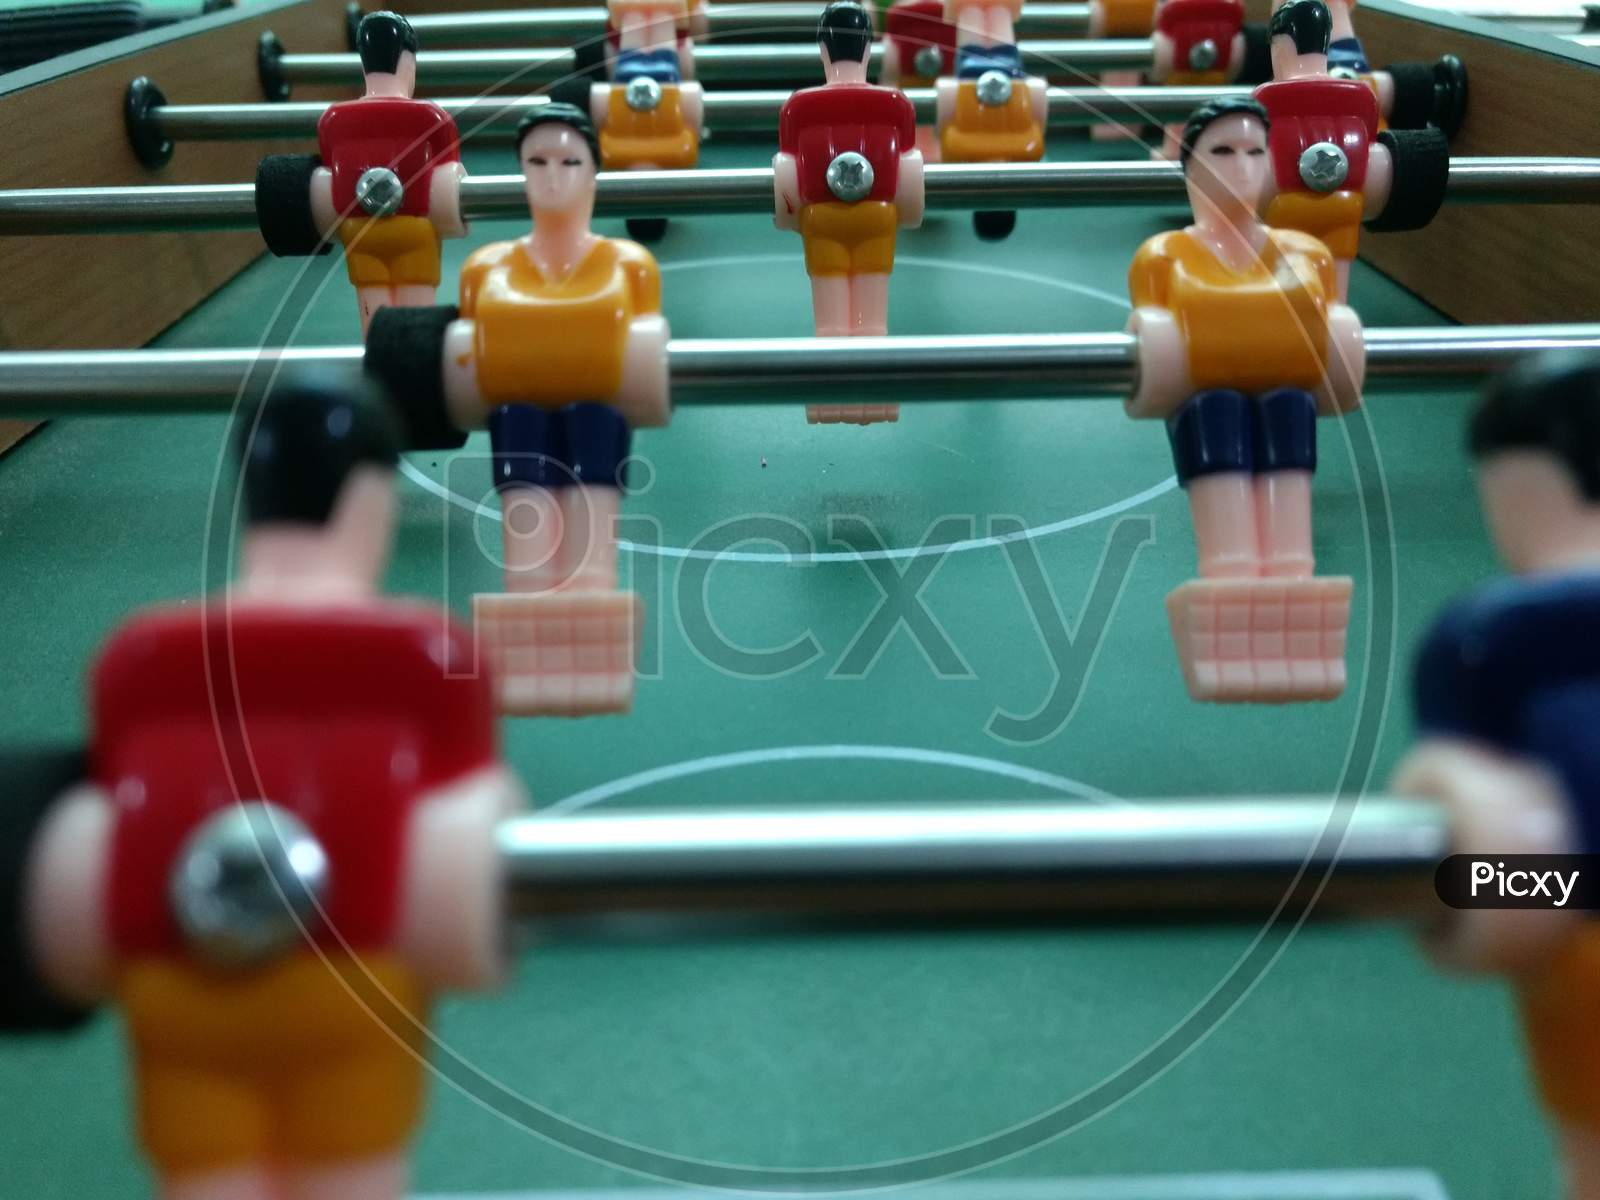 Foosball Table Football Game With Red And Yellow Players